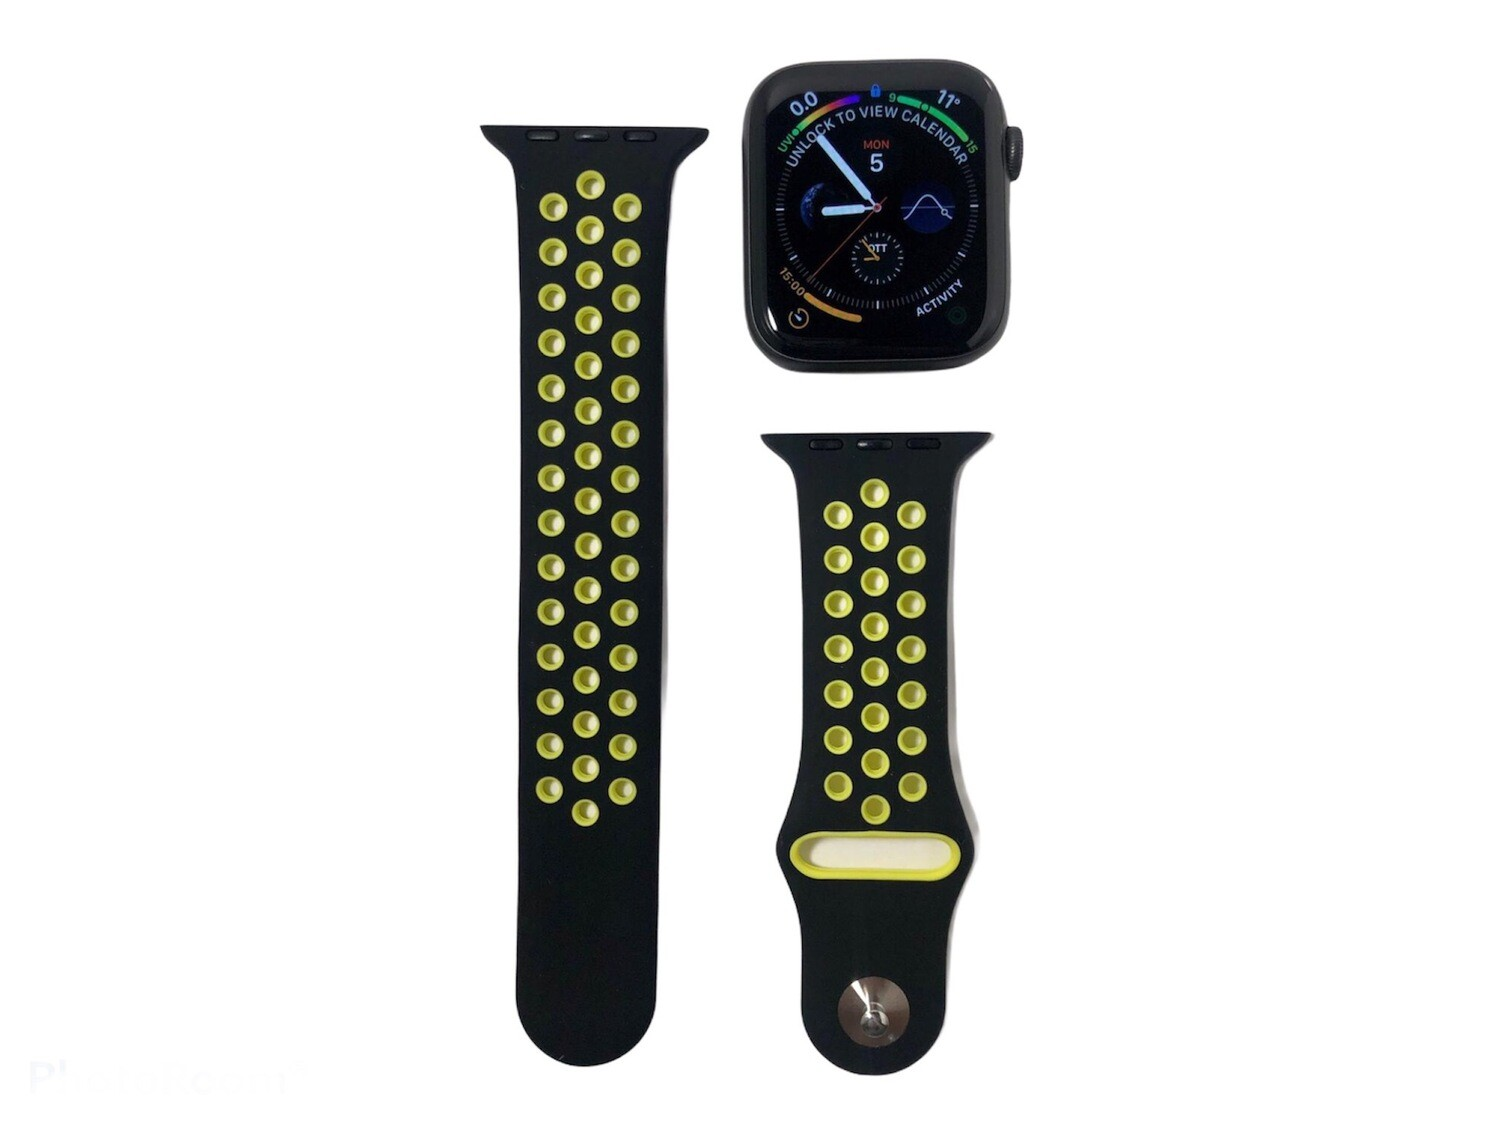 Apple Watch Silicone Band [Black/Lime]